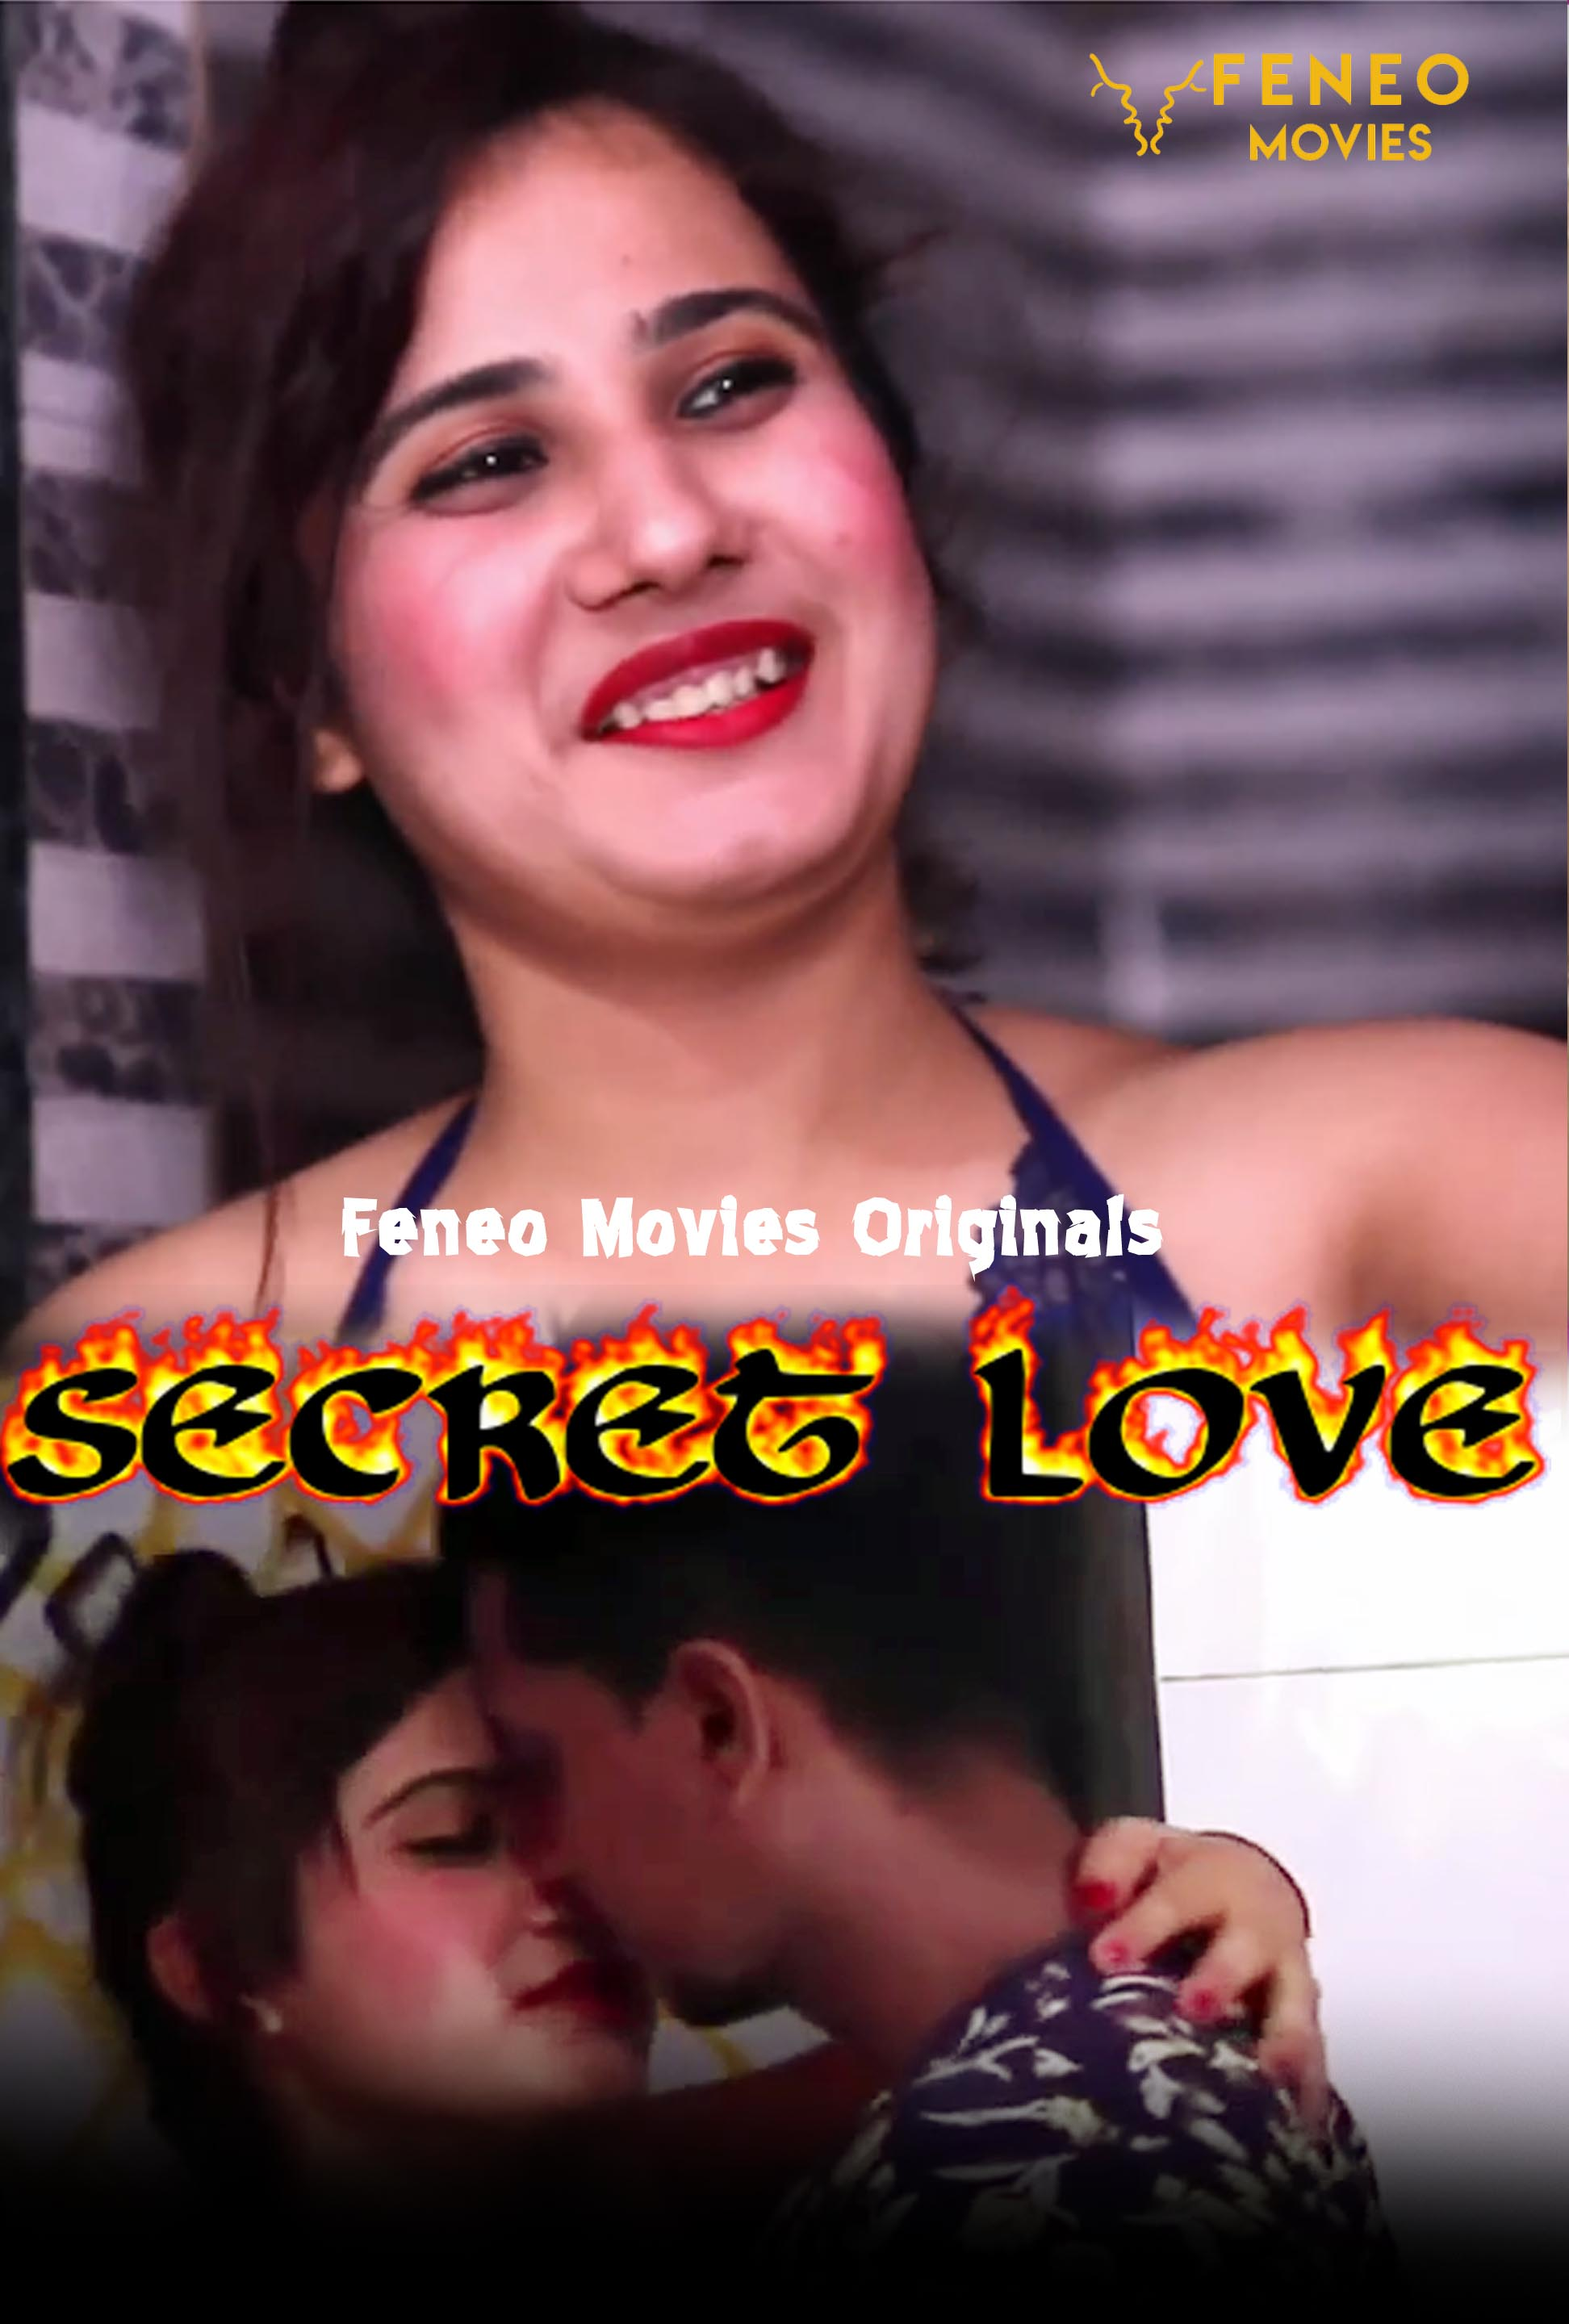 18+ Secret Love 2020 S01E01 Hindi Feneomovies Original Web Series 720p HDRip 250MB MKV